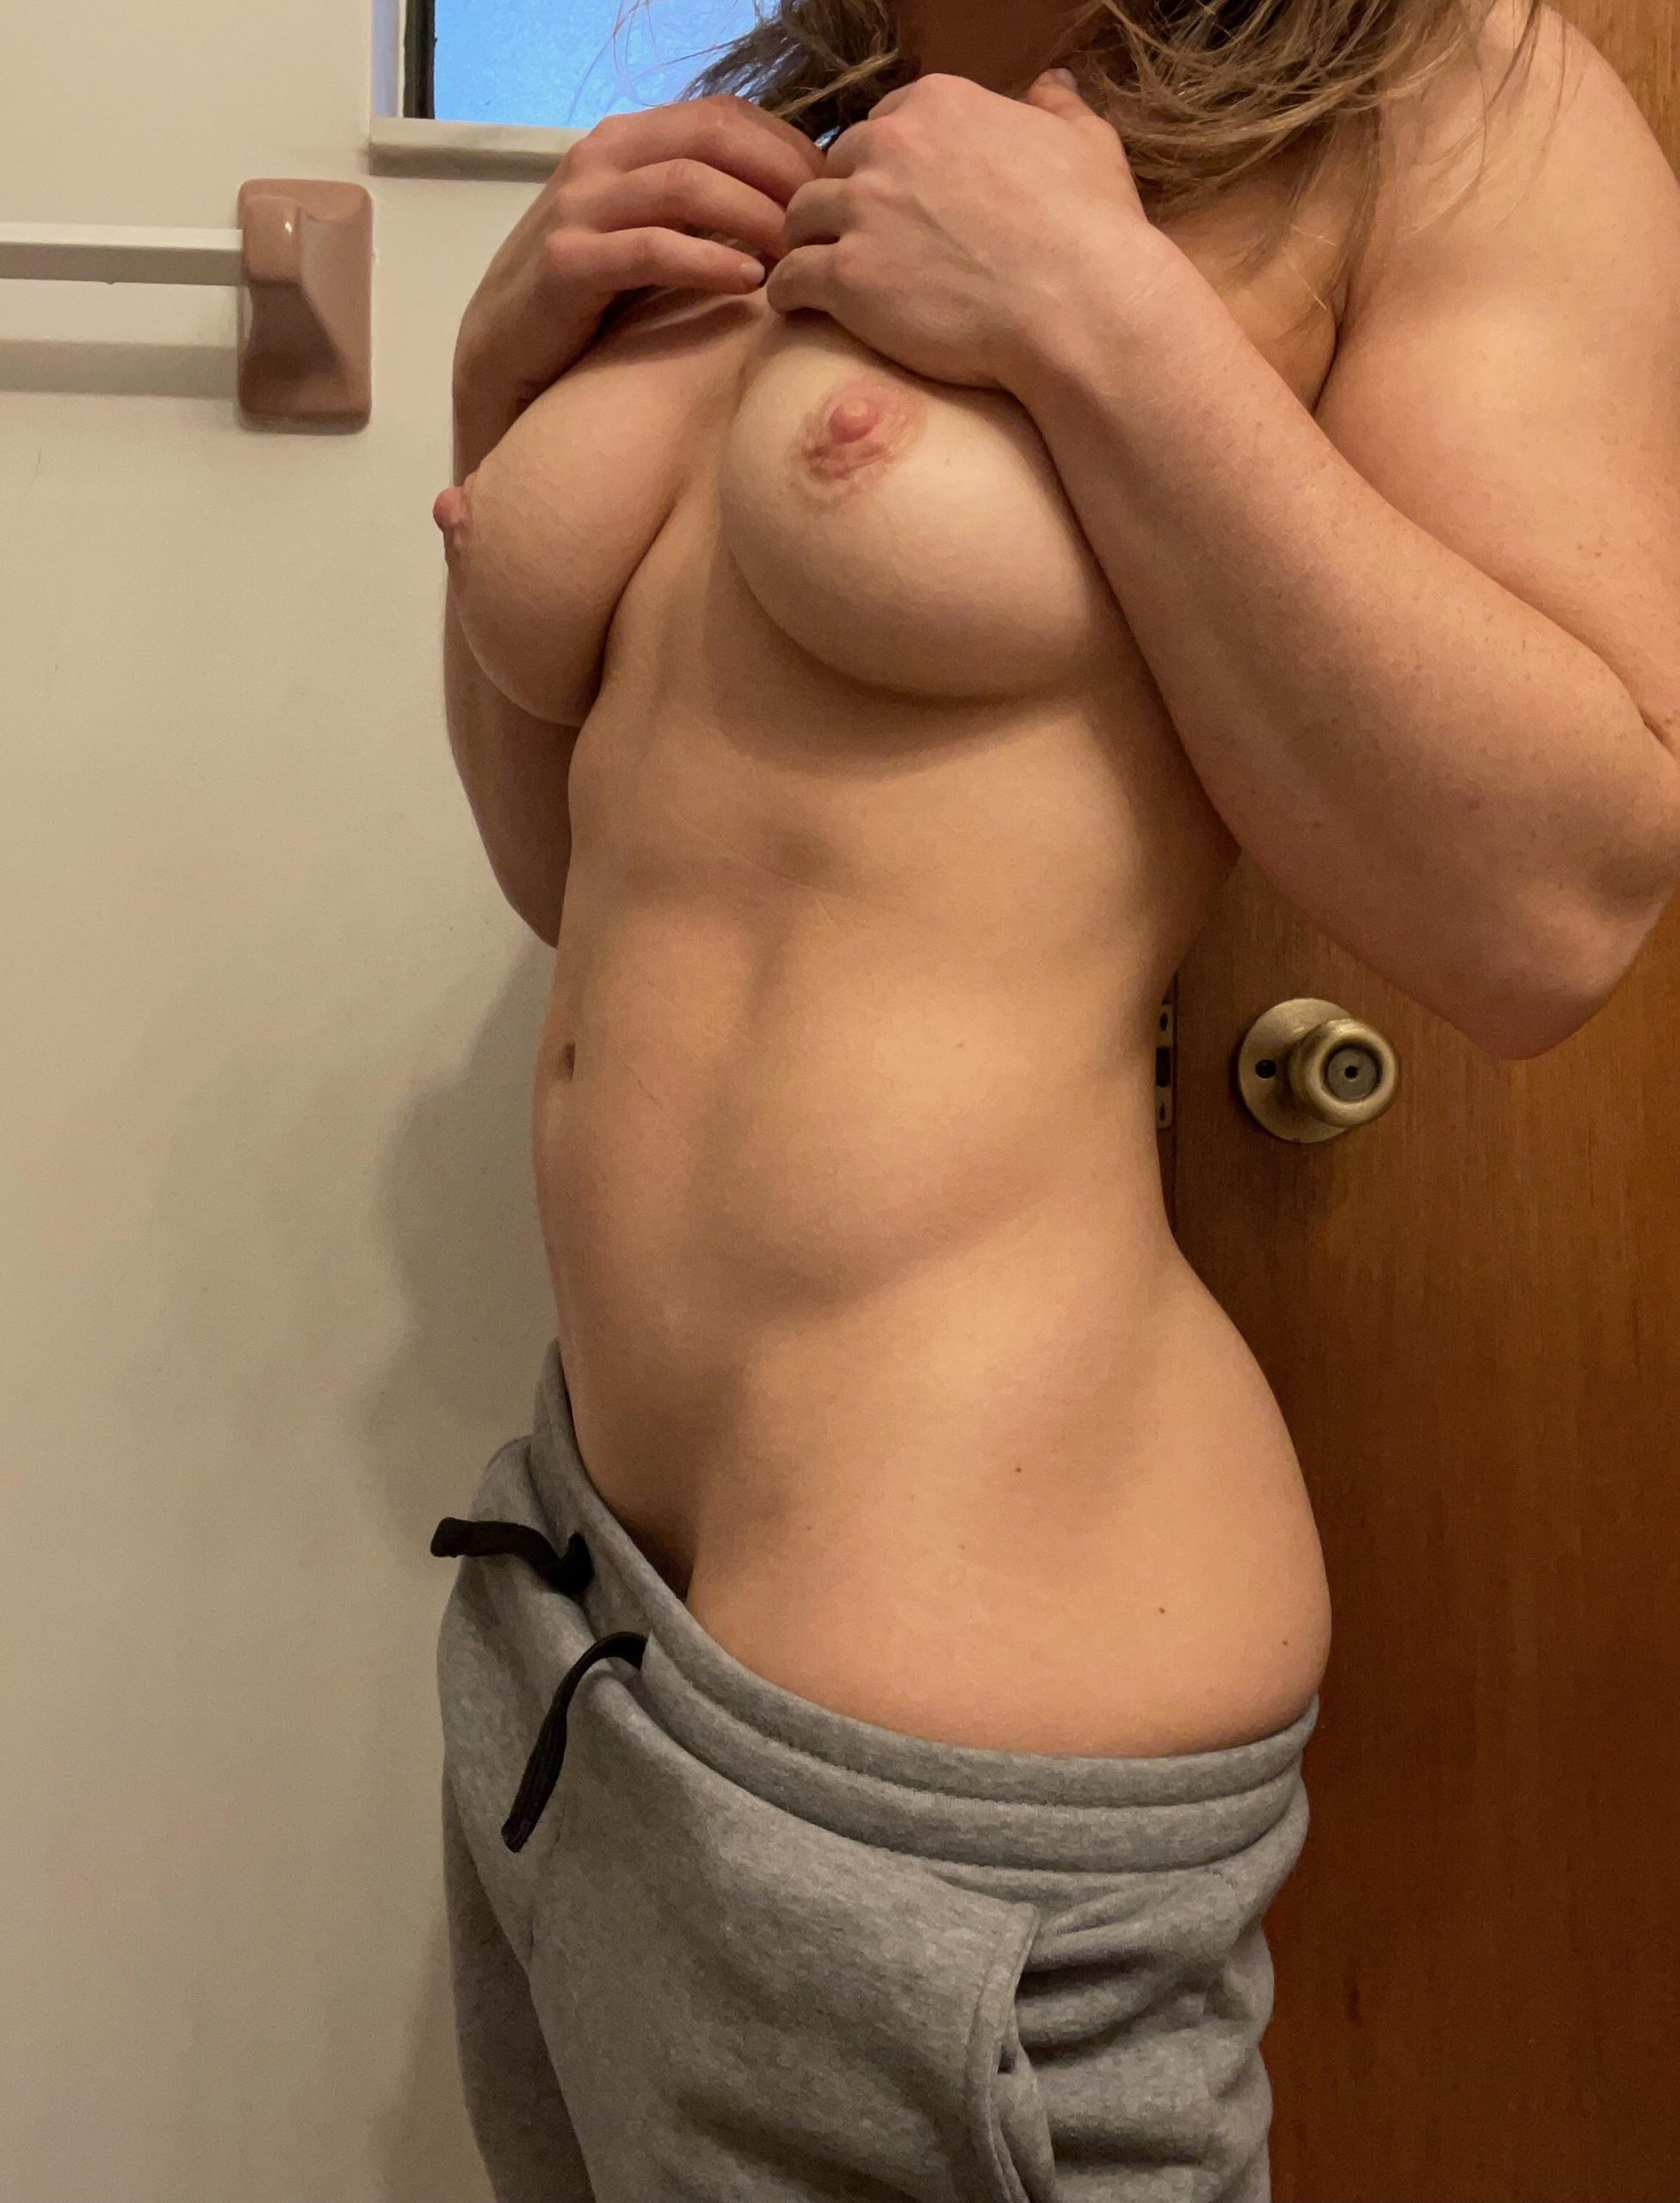 Can A Girl Who Lifts Get Some Love?